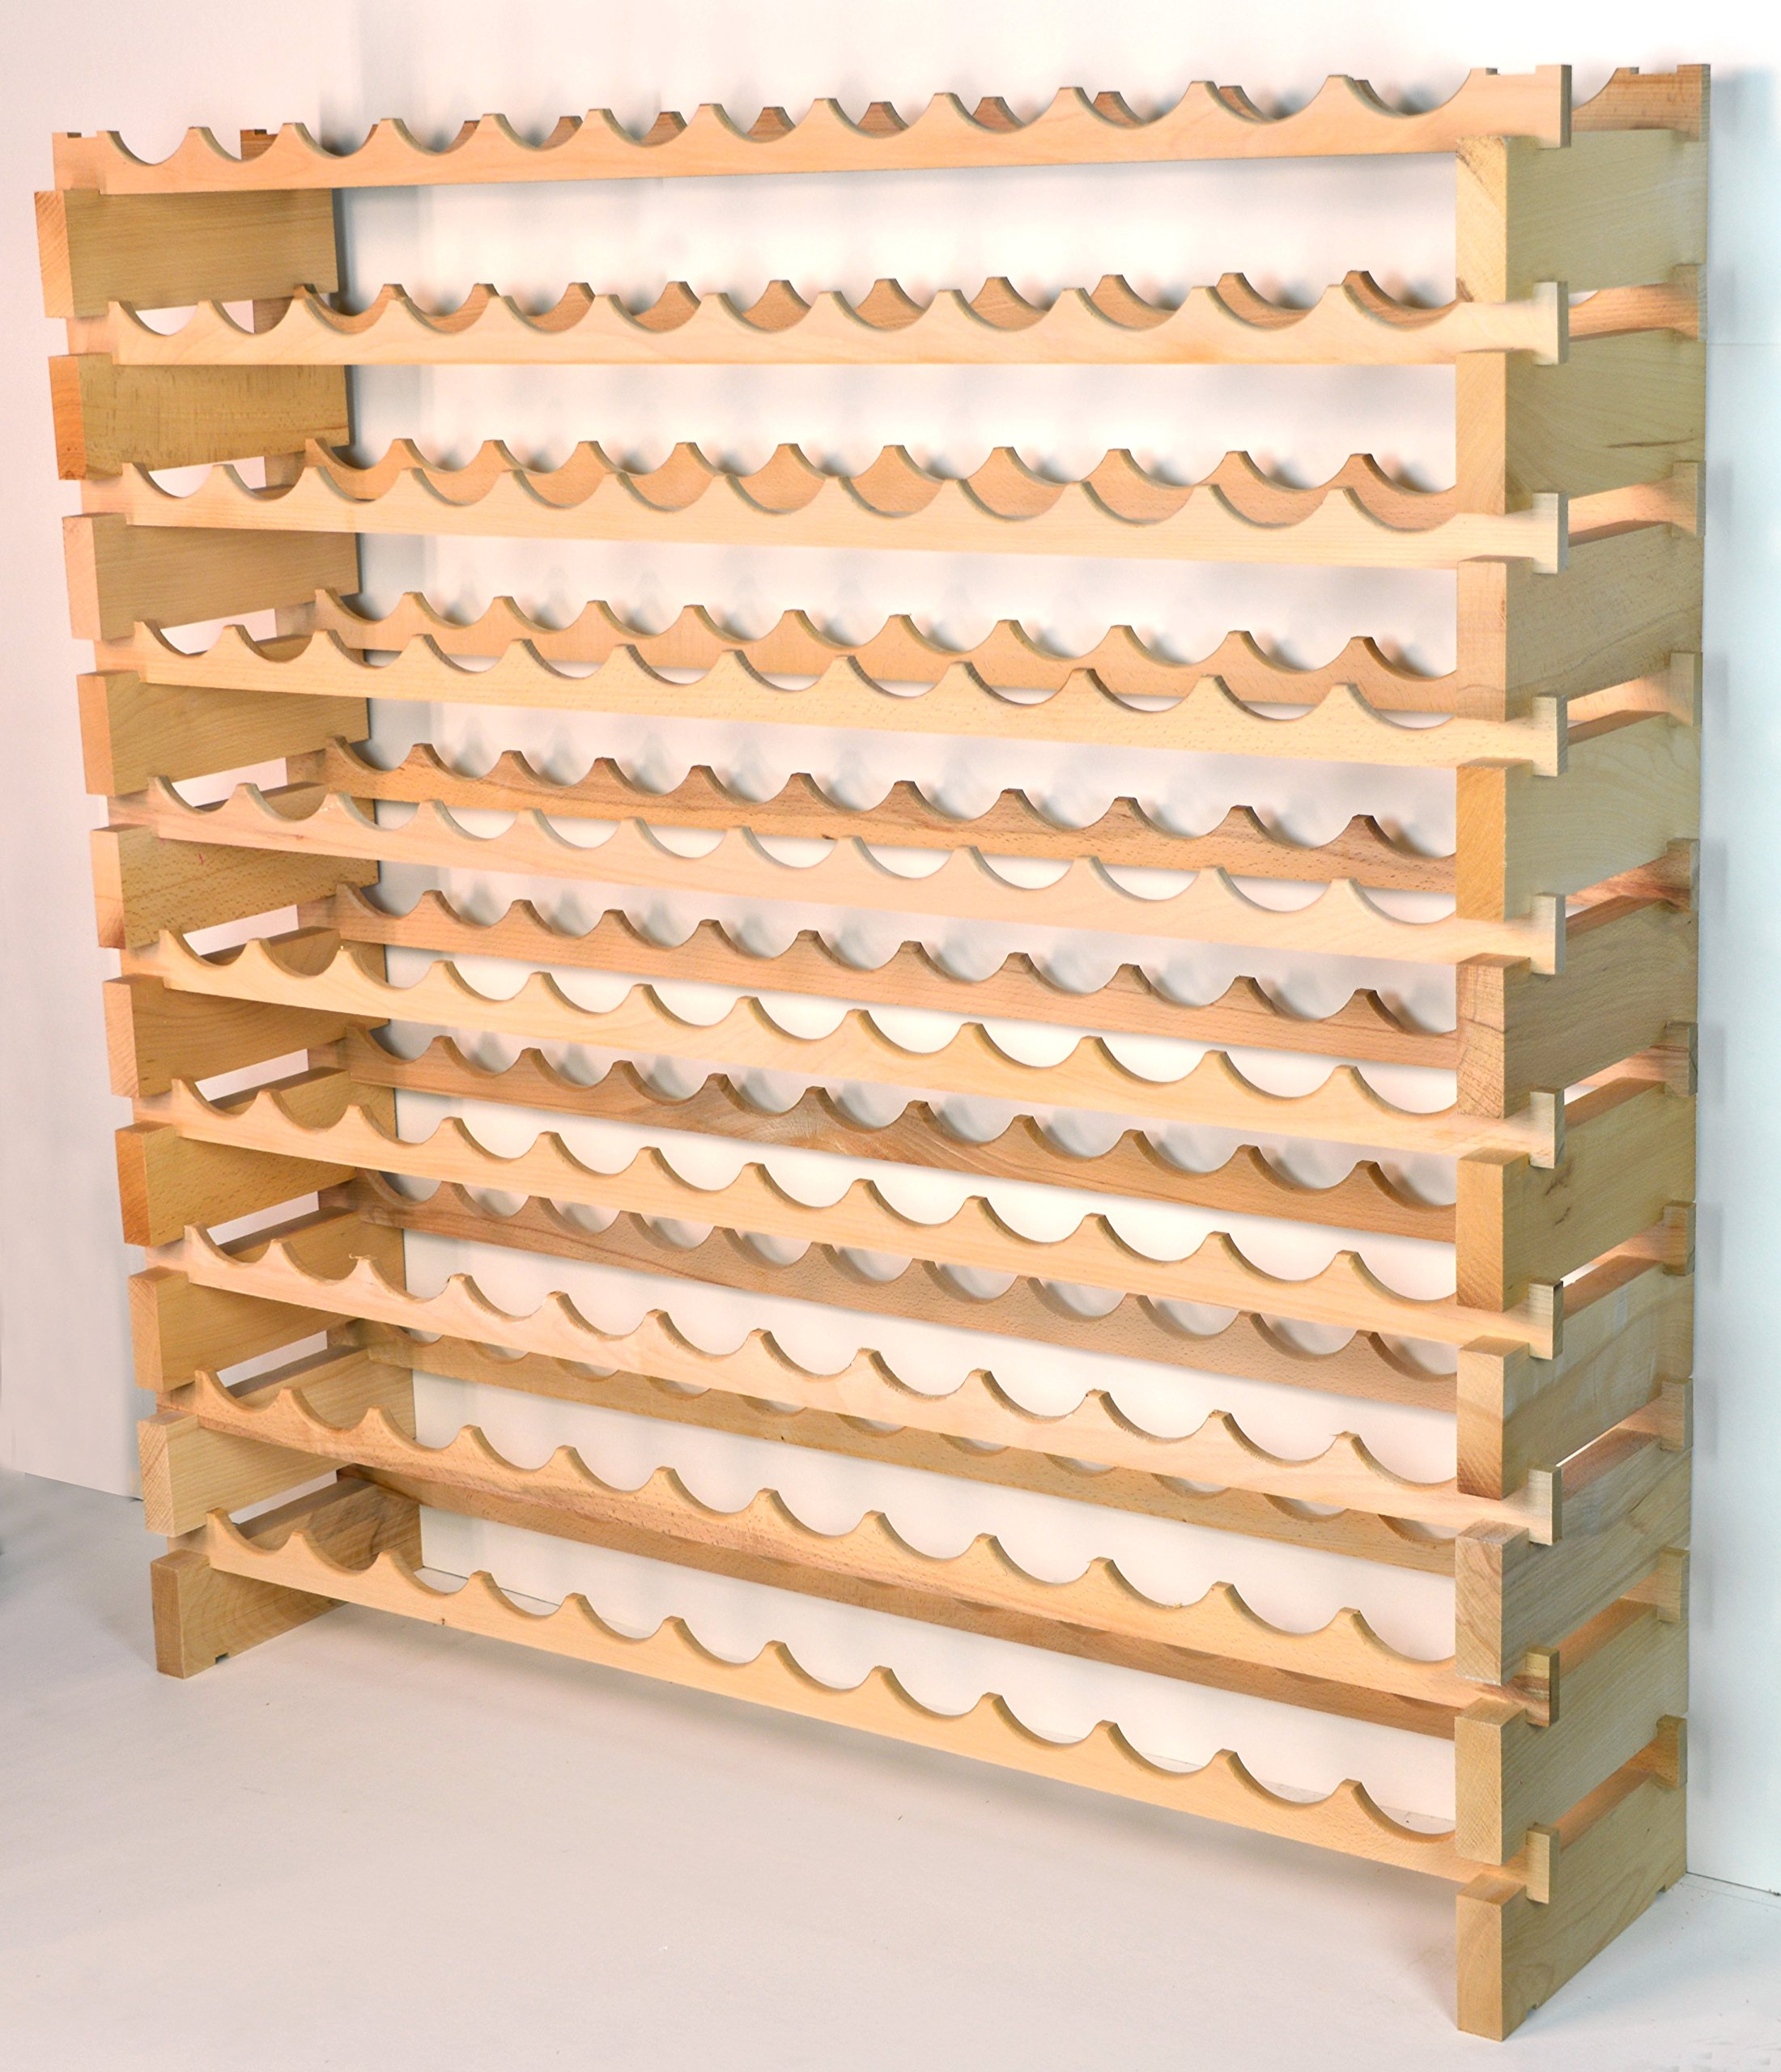 Modular Wine Rack Beechwood 48-144 Bottle Capacity 12 Bottles Across up to 12 Rows Newest Improved Model (120 Bottles - 10 Rows) by sfDisplay.com,LLC. (Image #6)